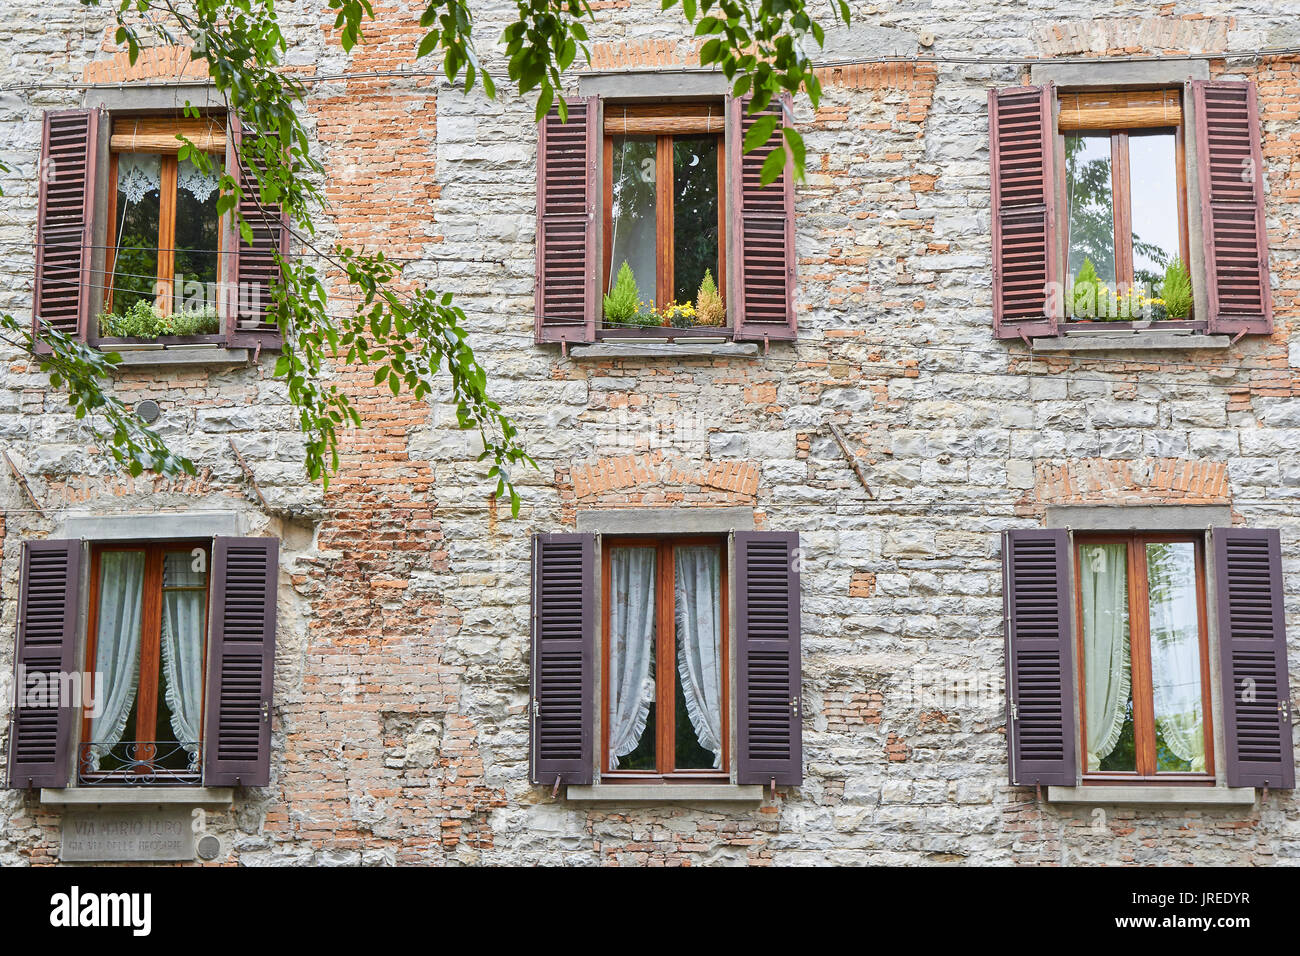 Six wood windows on a brick facade in a street of the town of Bergamo (Italy) - Stock Image